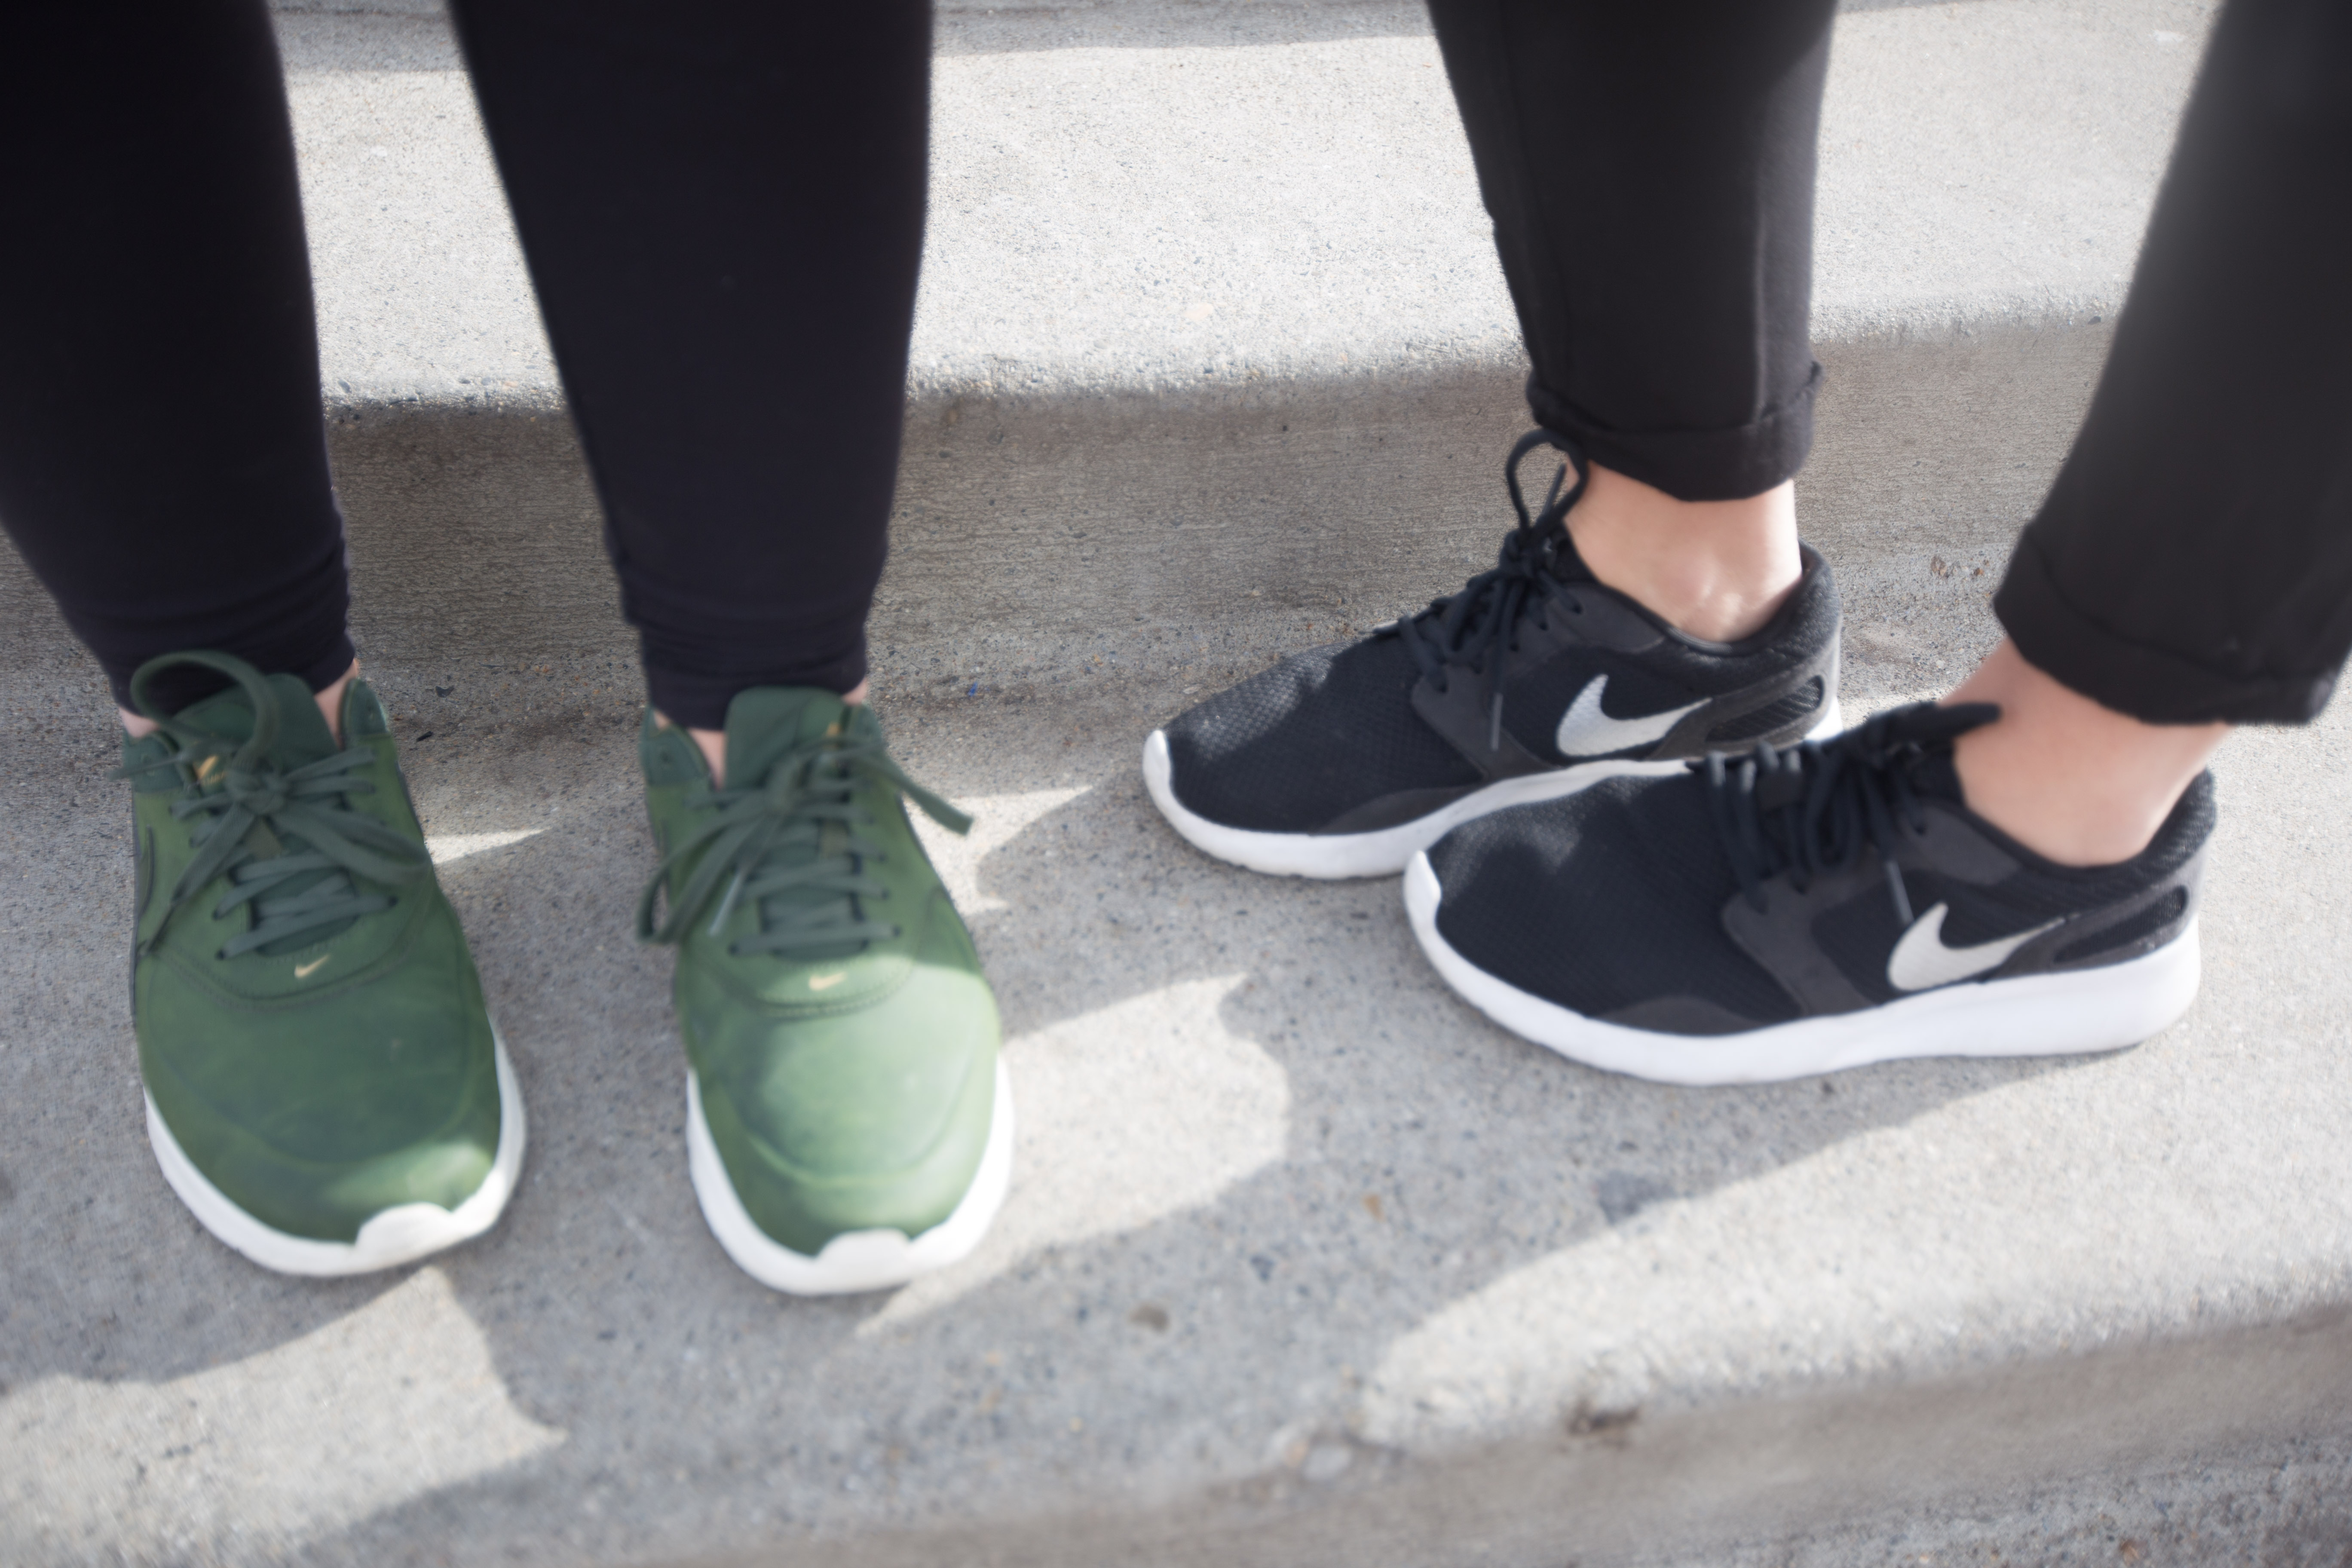 Athleisure is a new word being used by major fashion designers to describe the new trend of athletic wear that can be worn in non-athletic settings. (Natalie Stoker)